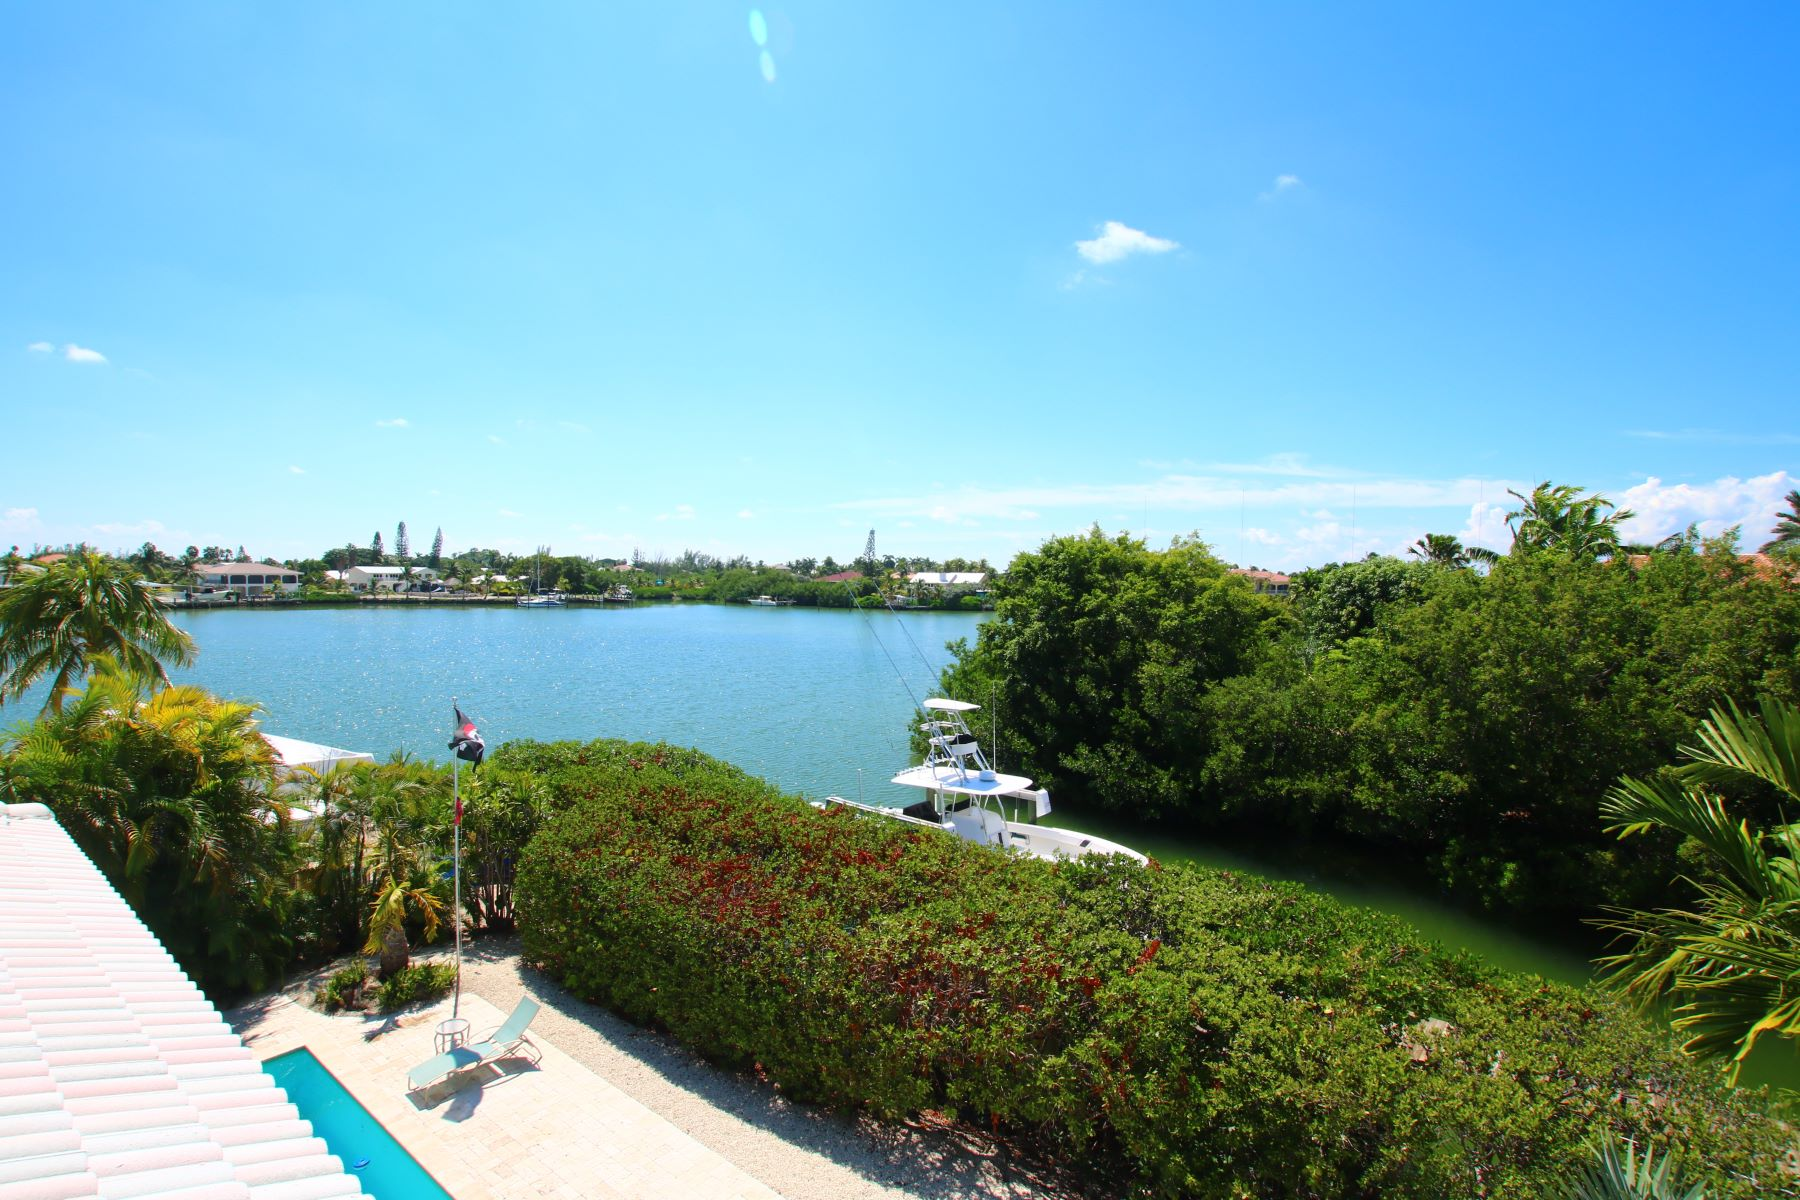 Additional photo for property listing at Anglers Dream Home 229 S Anglers Dr Marathon, Φλοριντα 33050 Ηνωμενεσ Πολιτειεσ